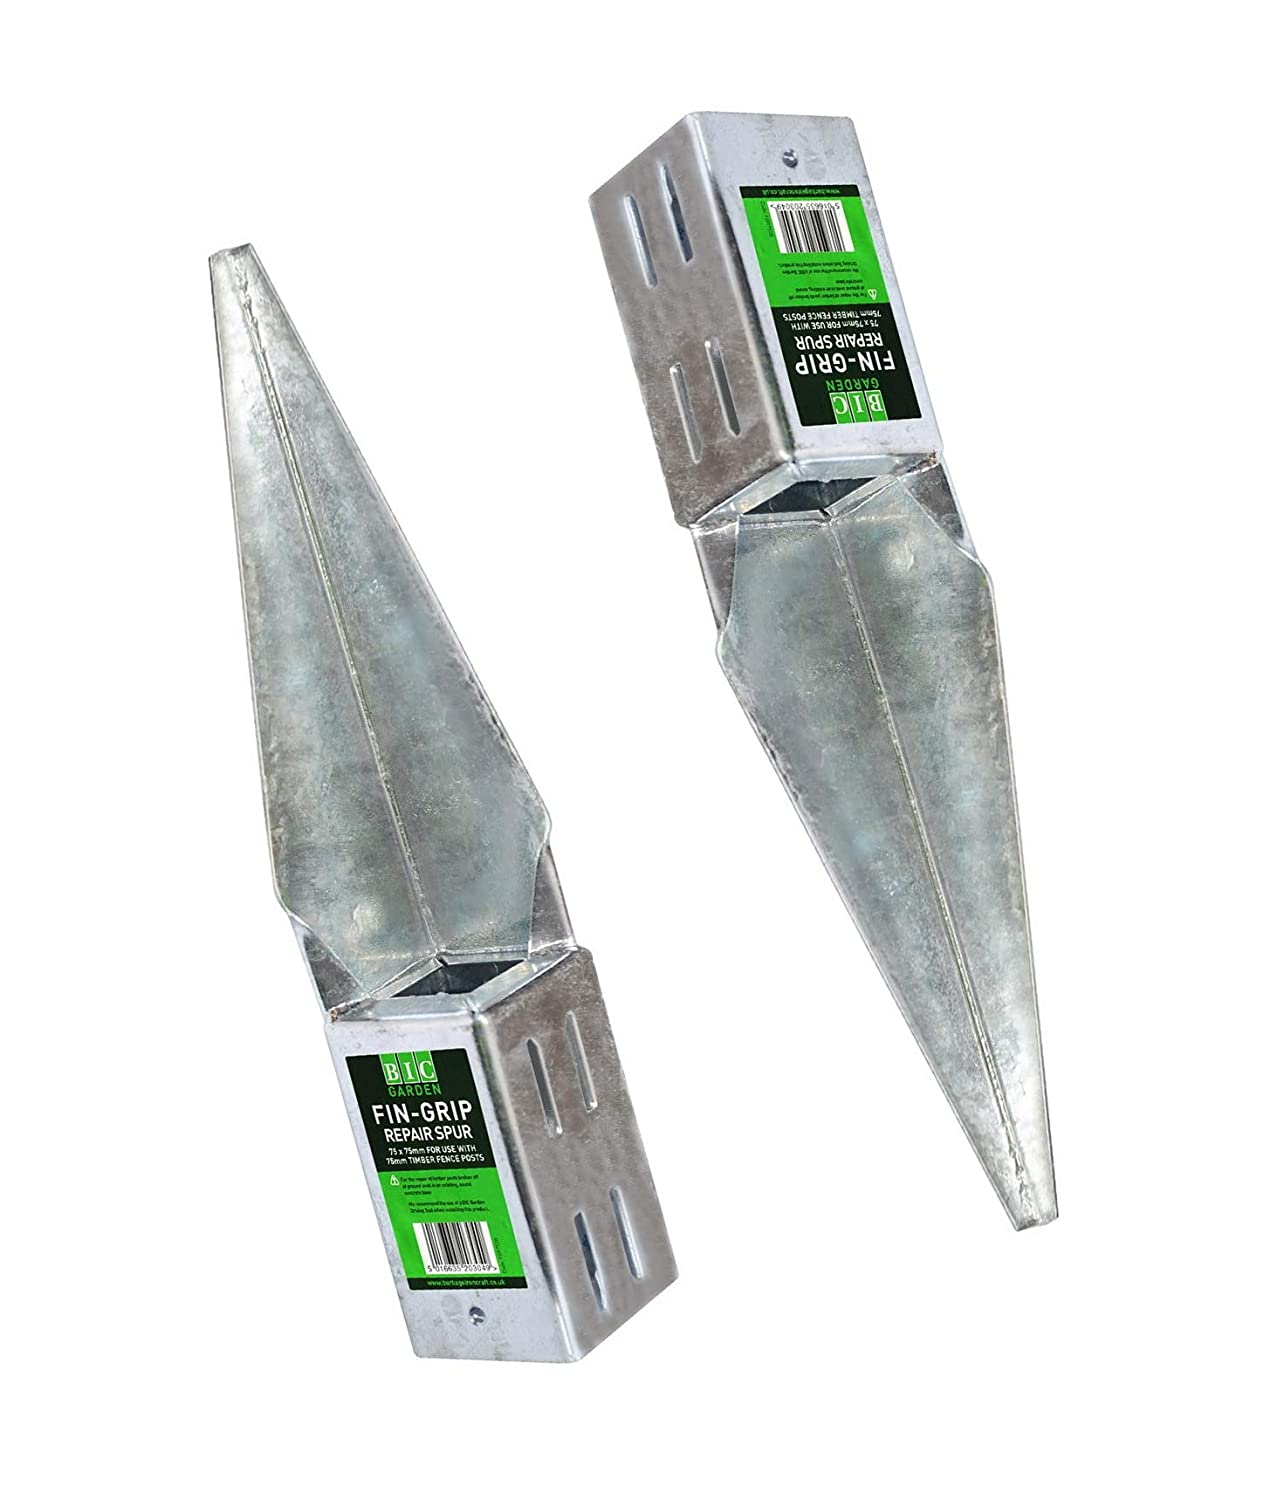 Timber Fence post shoes heavy duty Galvanised type 2 to suit 100mm square posts